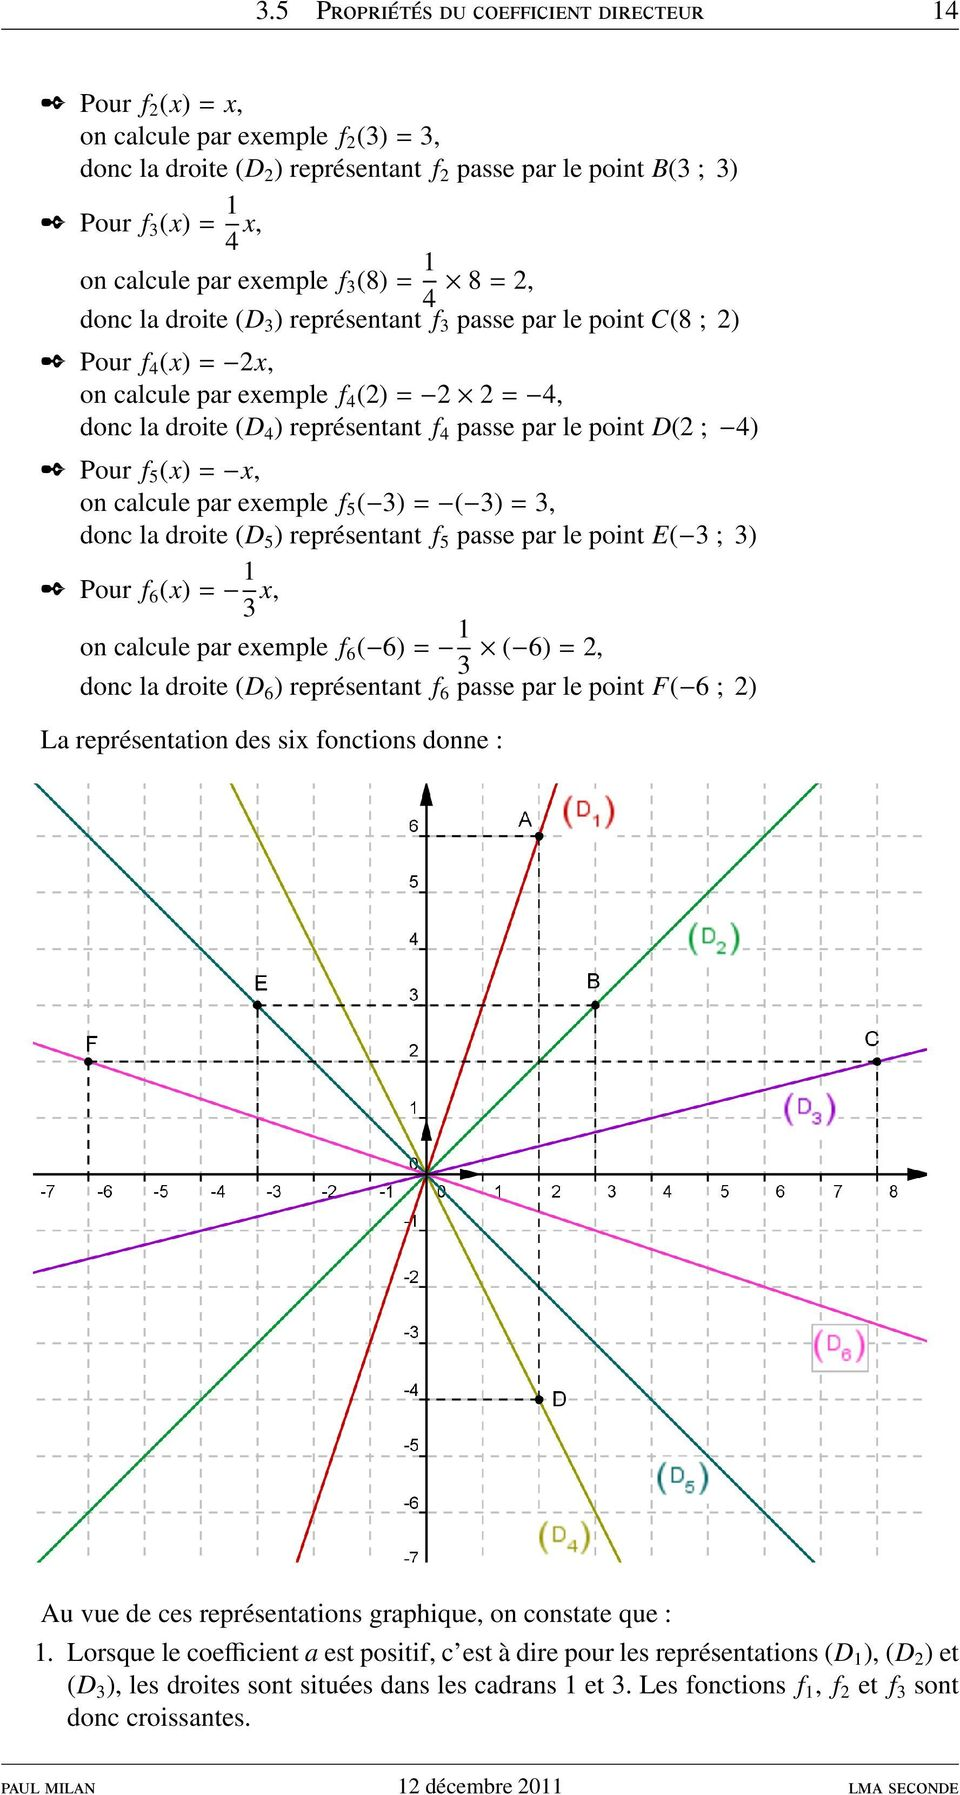 passe par le point D(2 ; 4) Pour f 5 (x) = x, on calcule par exemple f 5 ( 3) = ( 3) = 3, donc la droite (D 5 ) représentant f 5 passe par le point E( 3 ; 3) Pour f 6 (x) = 1 3 x, on calcule par